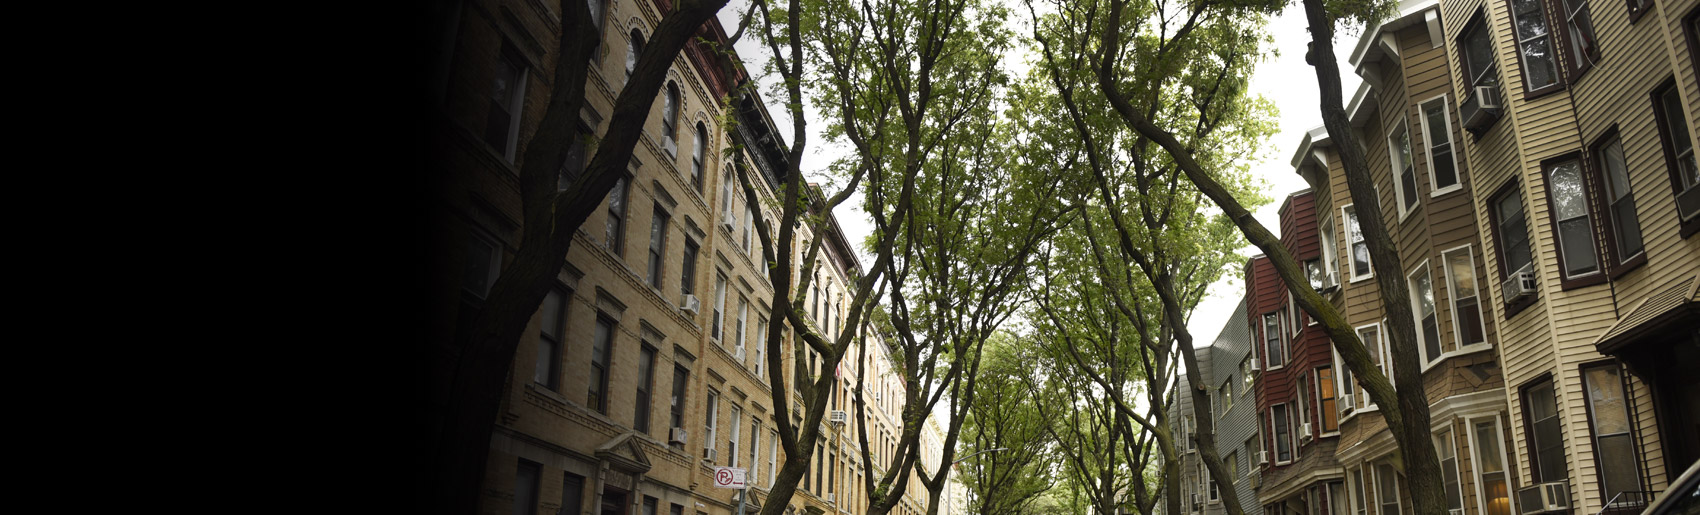 A tree-lined street of brownstone homes